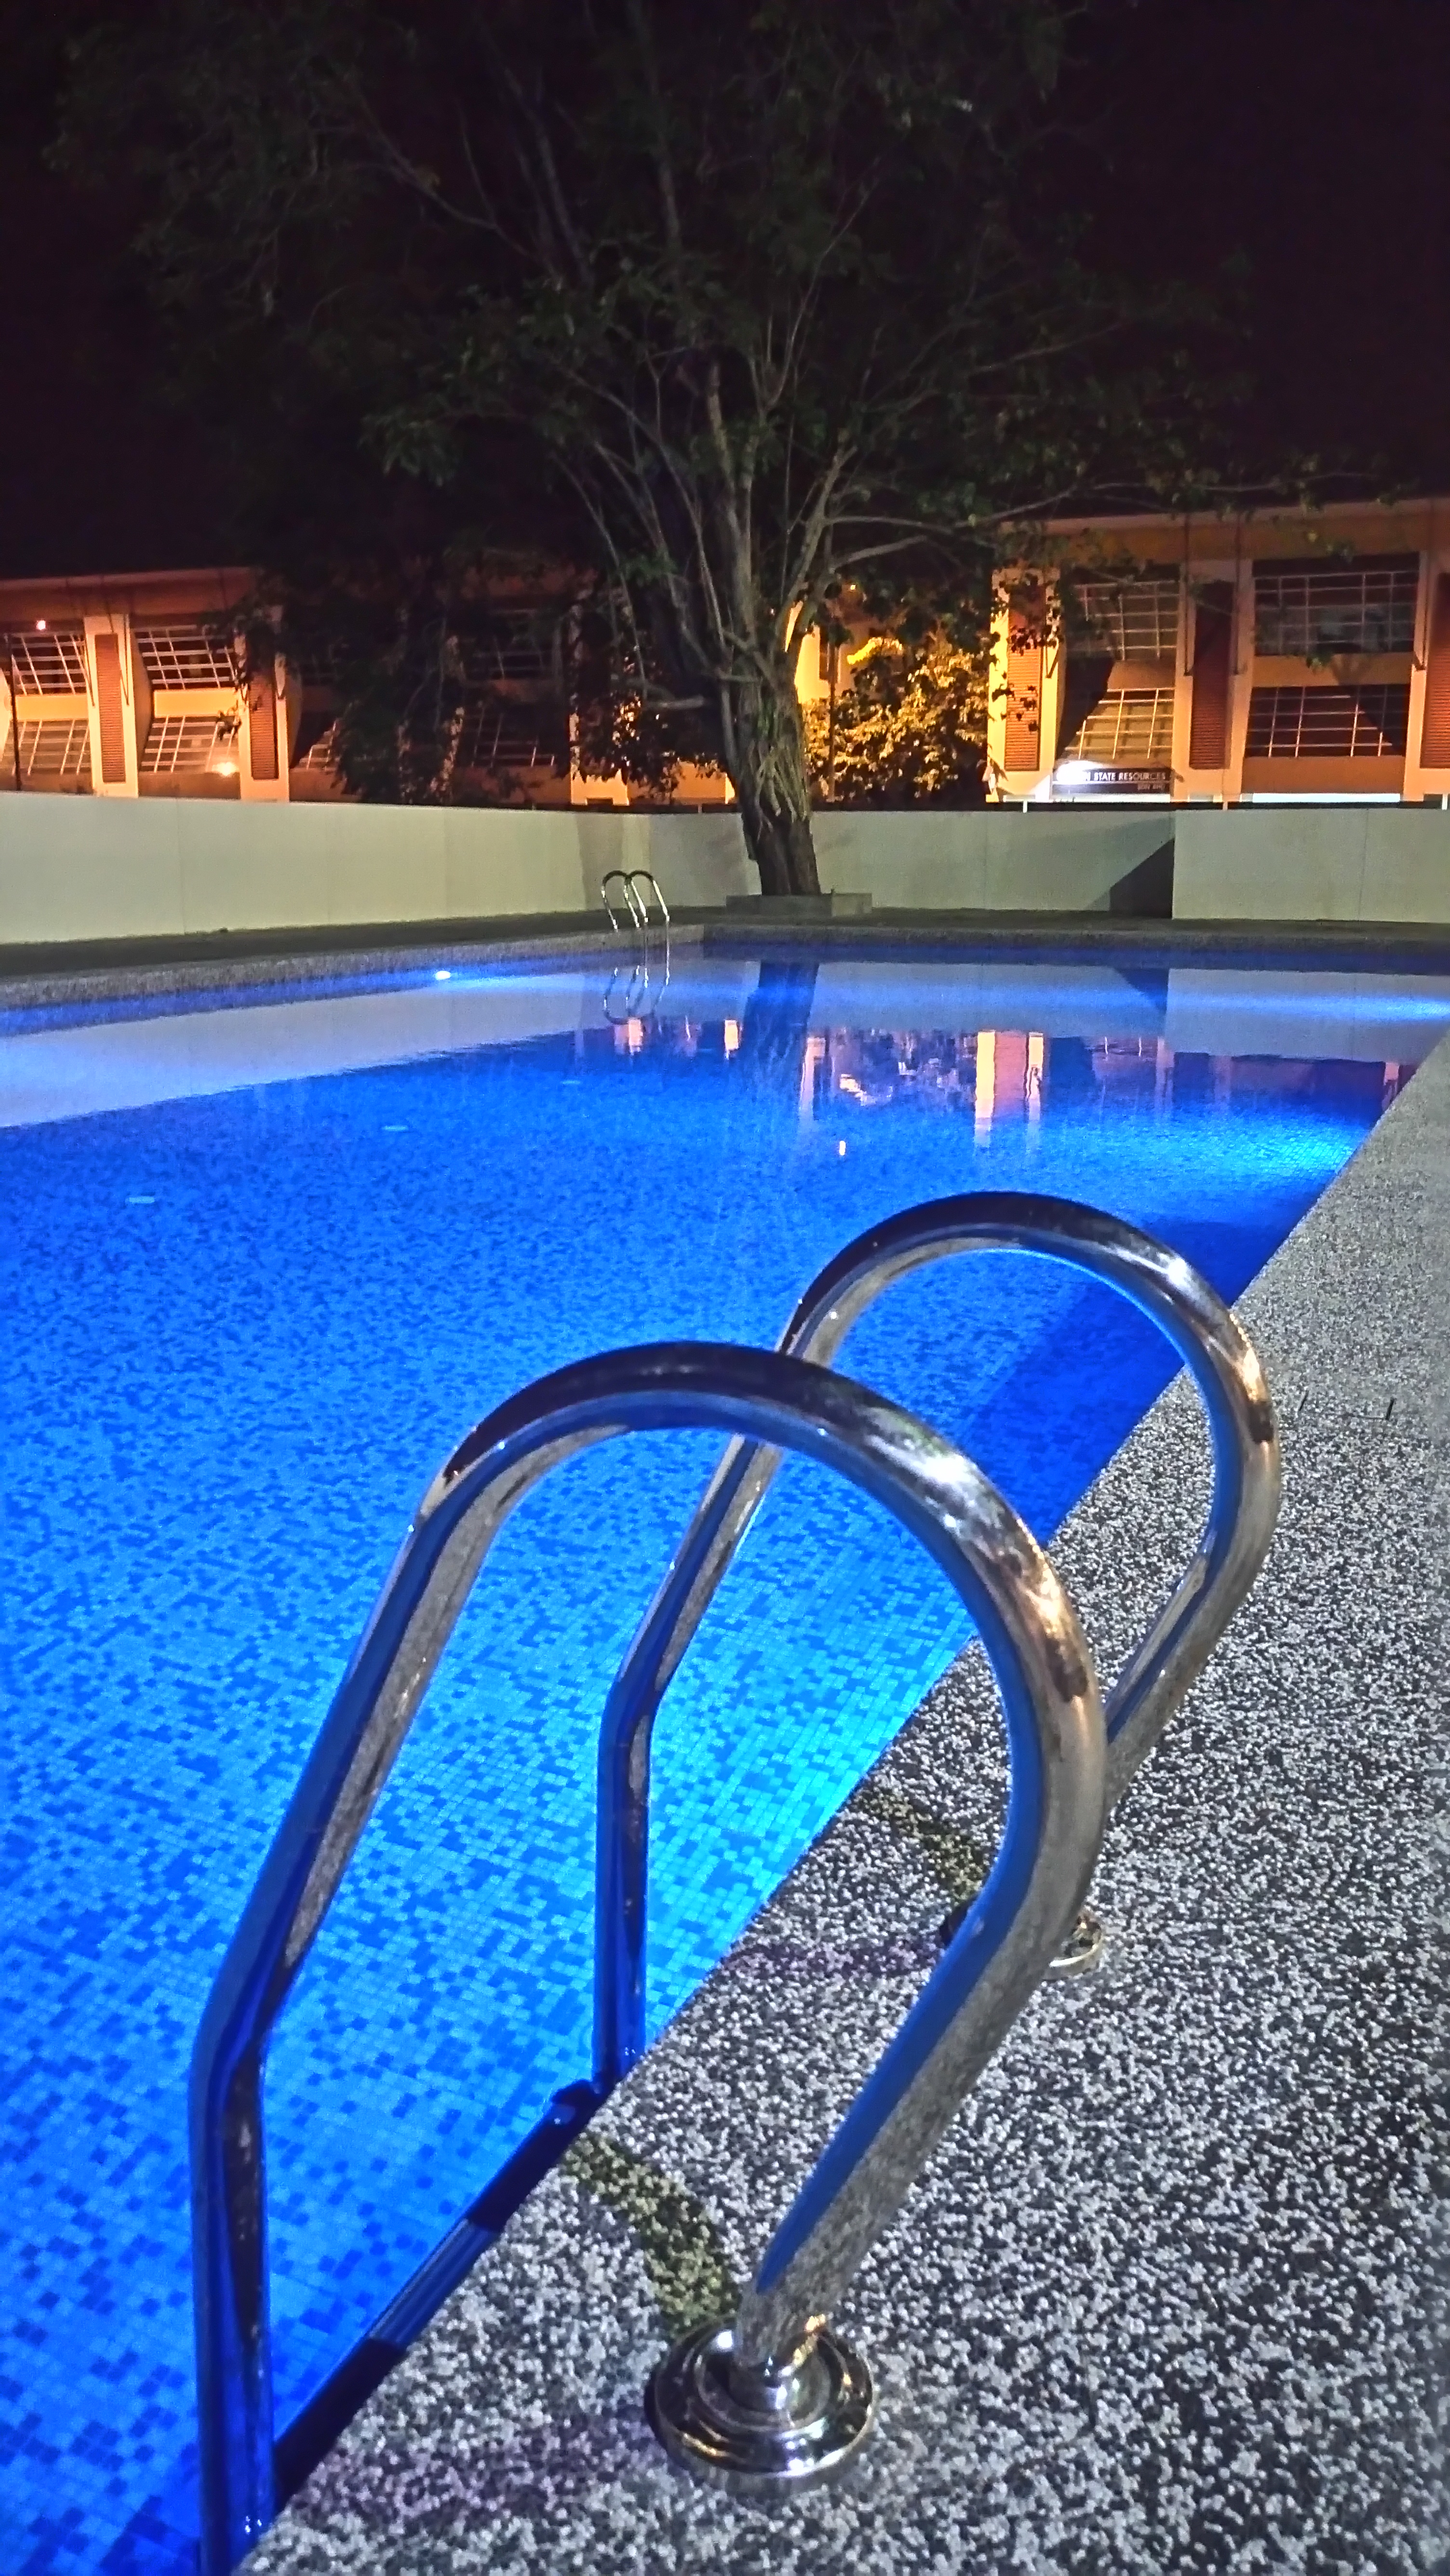 Swimming pool reopens impiana hotel ipoh - 24 hour fitness with swimming pool locations ...